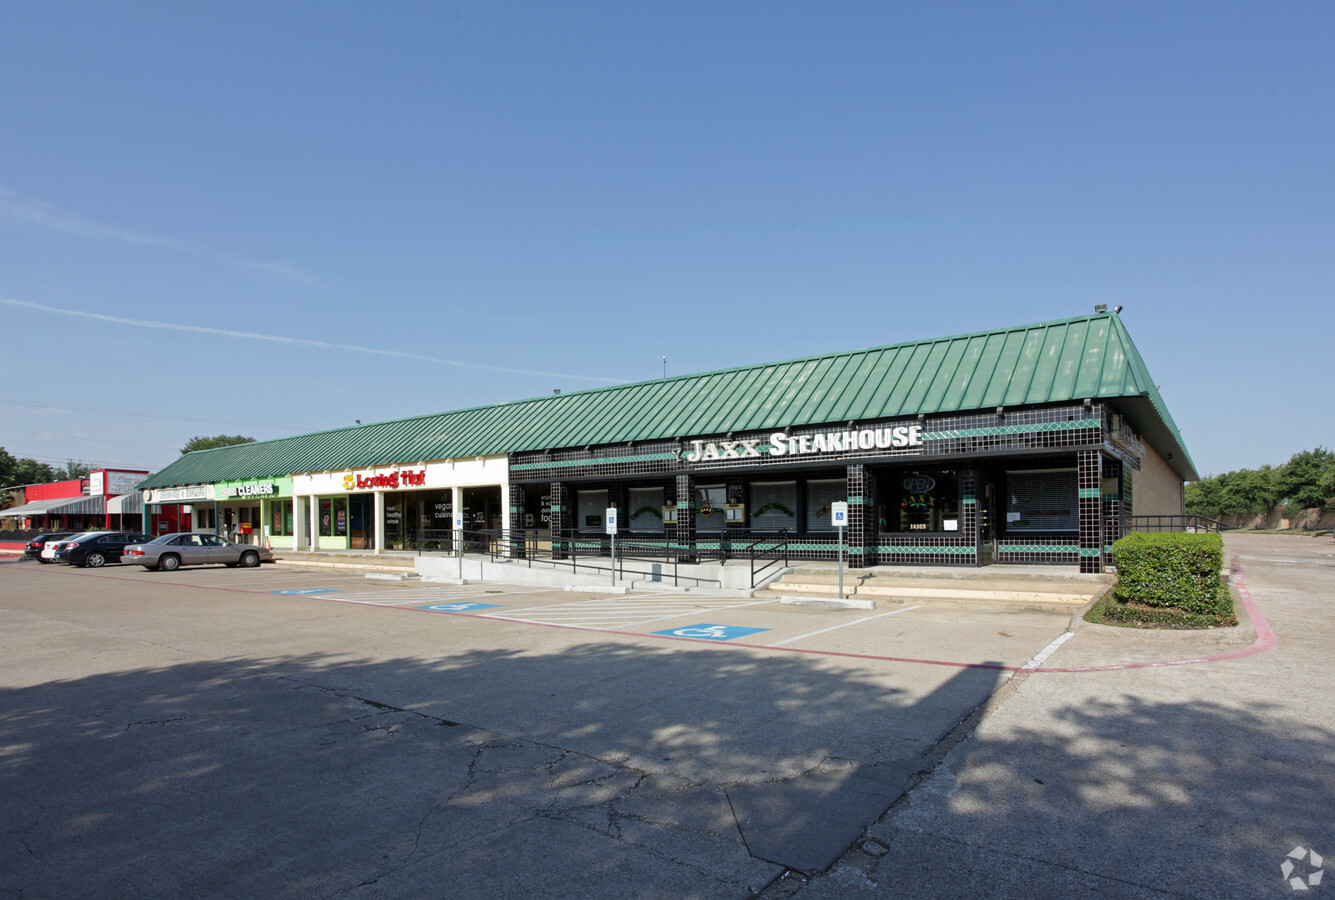 14925-Midway-Rd-Addison-TX-14925-Midway-Rd-1-HighDefinition.jpg